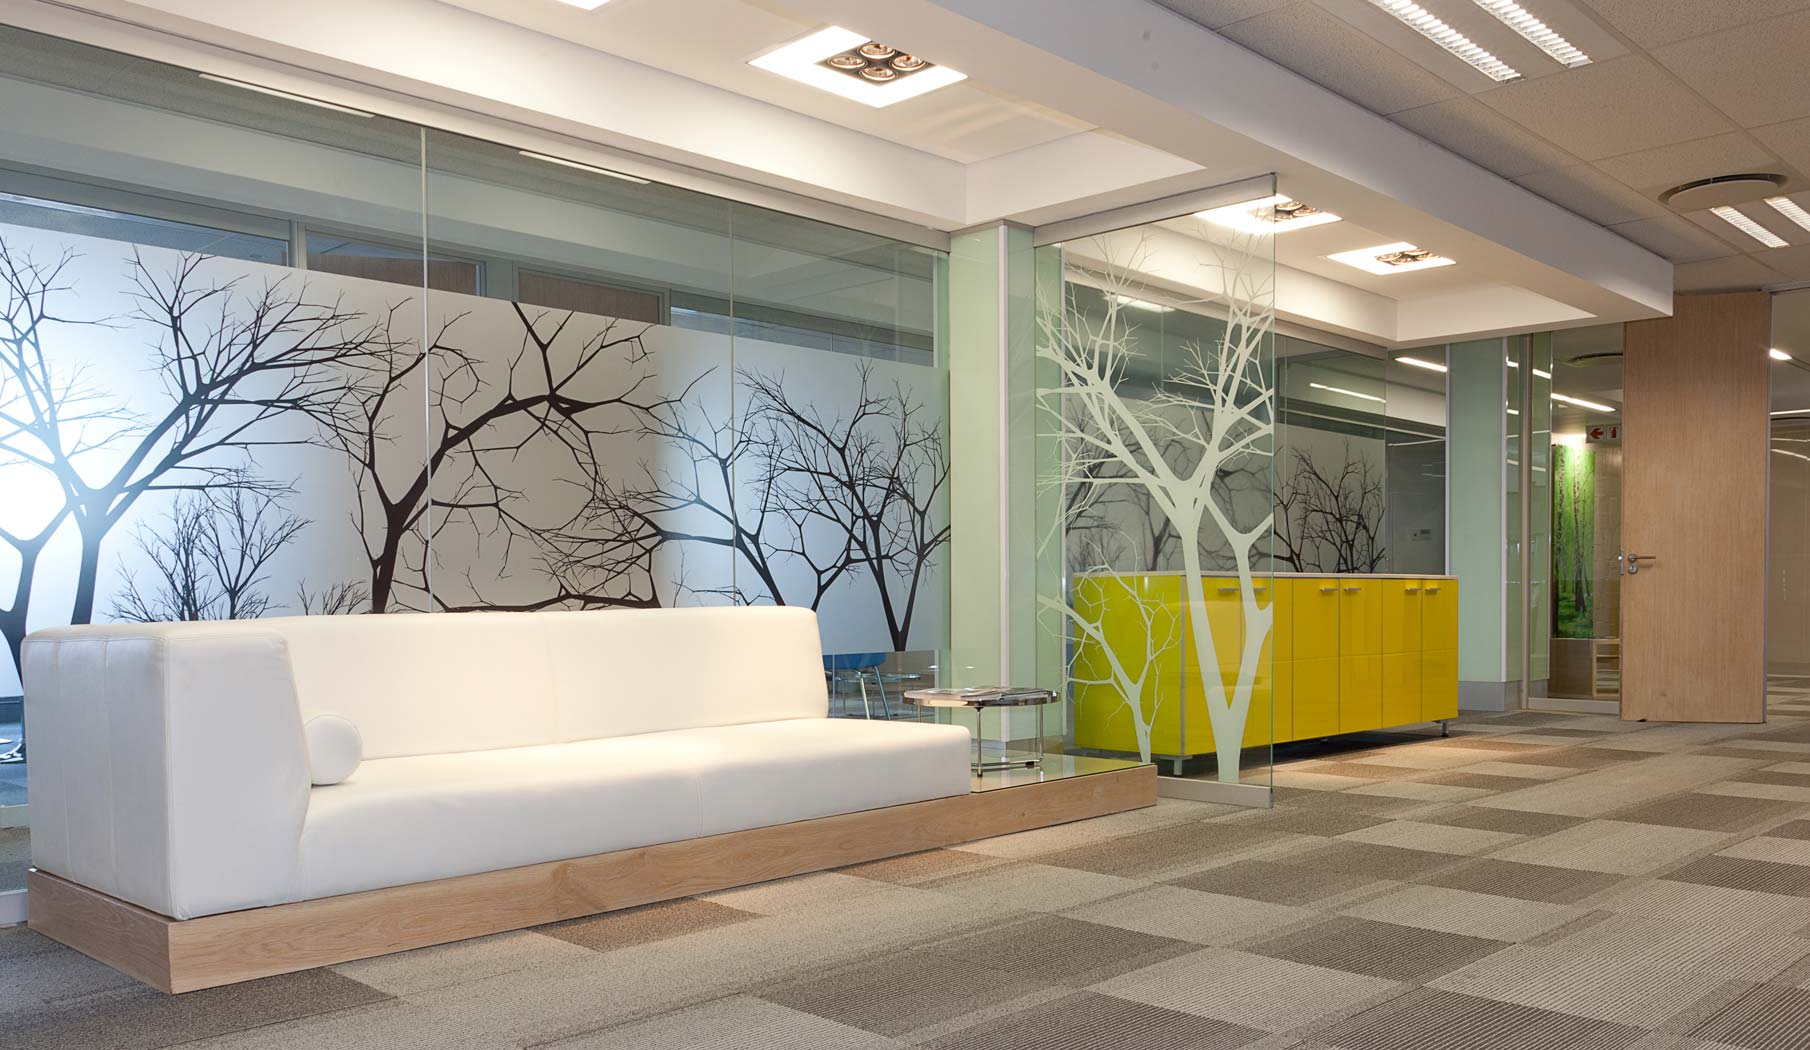 Idy commercial branding for Office window design